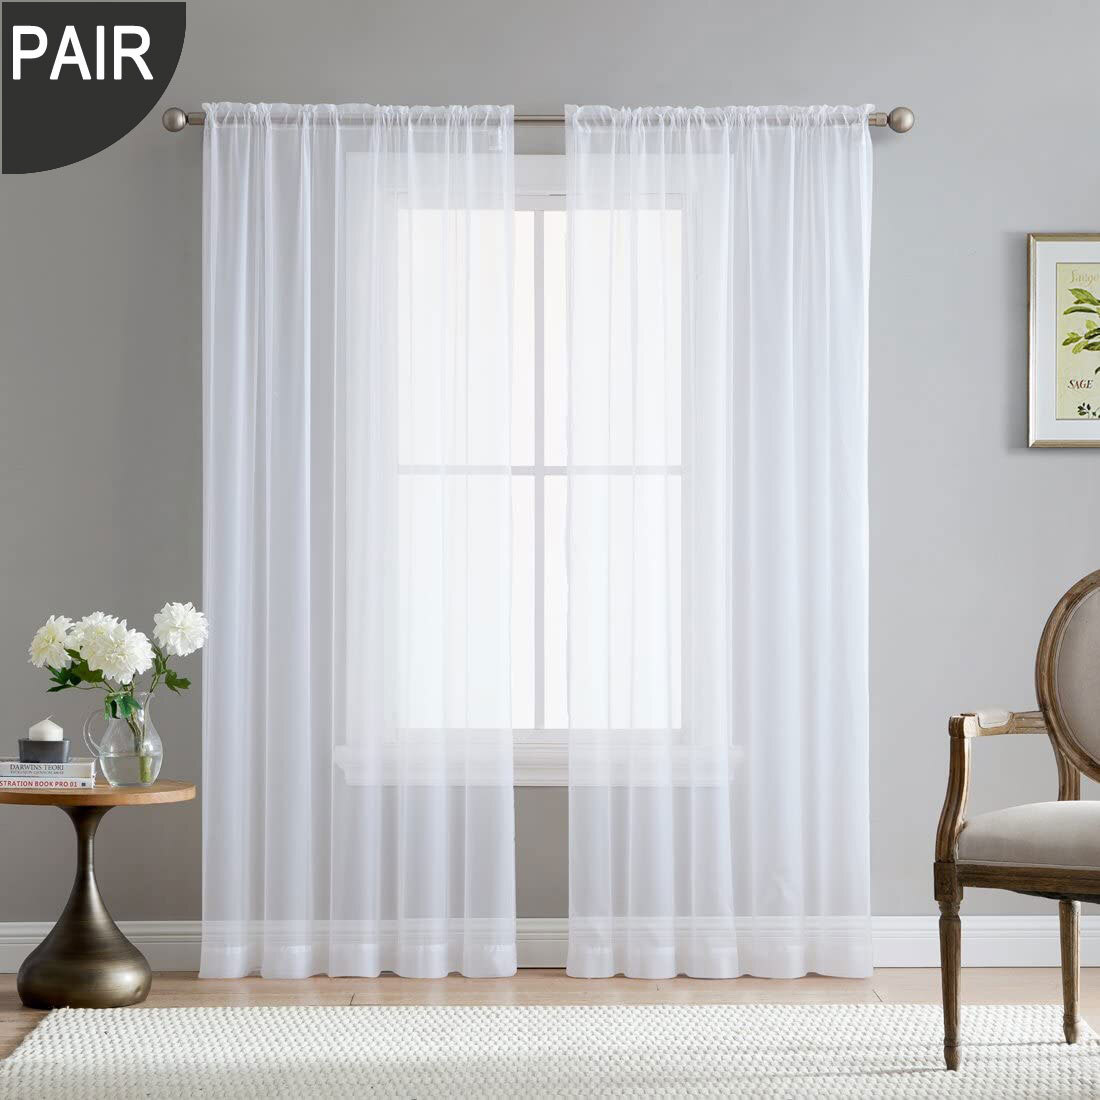 rod pocket white voile sheer curtain one pair